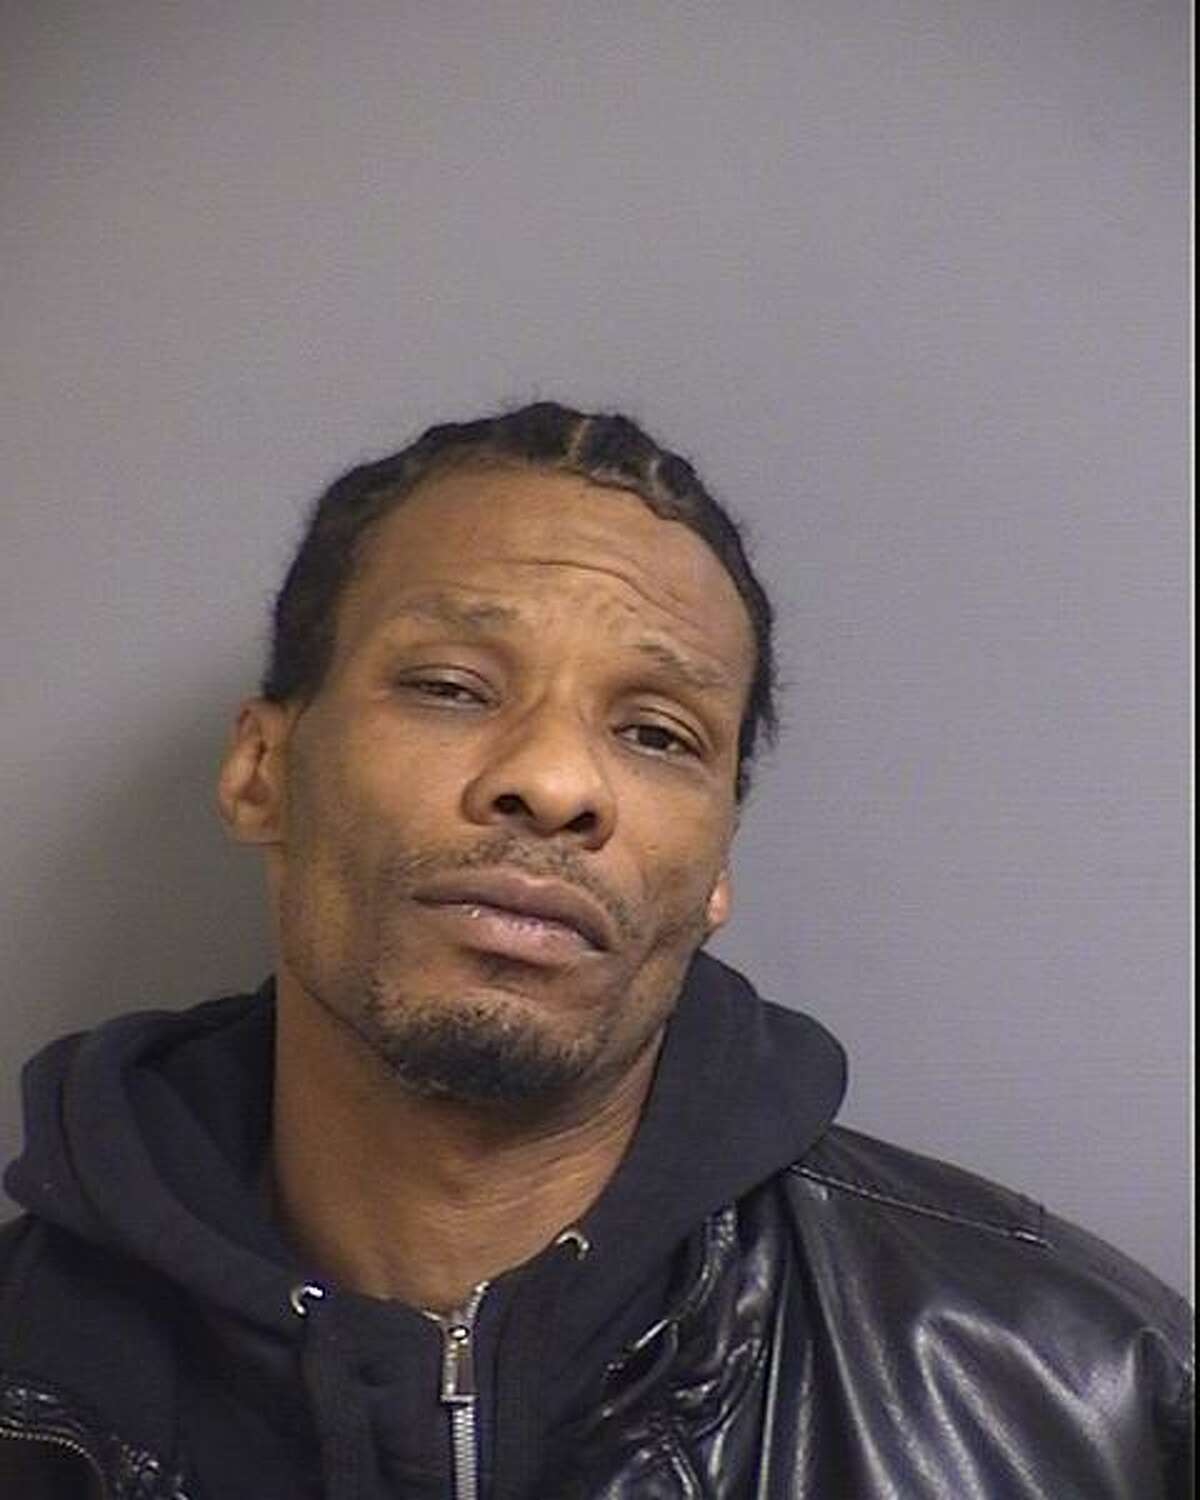 Police in Coralville arrested Telly Shadell Corey, 41, on Sunday and charged him with indecent exposure, according to online jail records. Corey allegedly exposed himself to a female passenger on a Megabus trip for three hours.